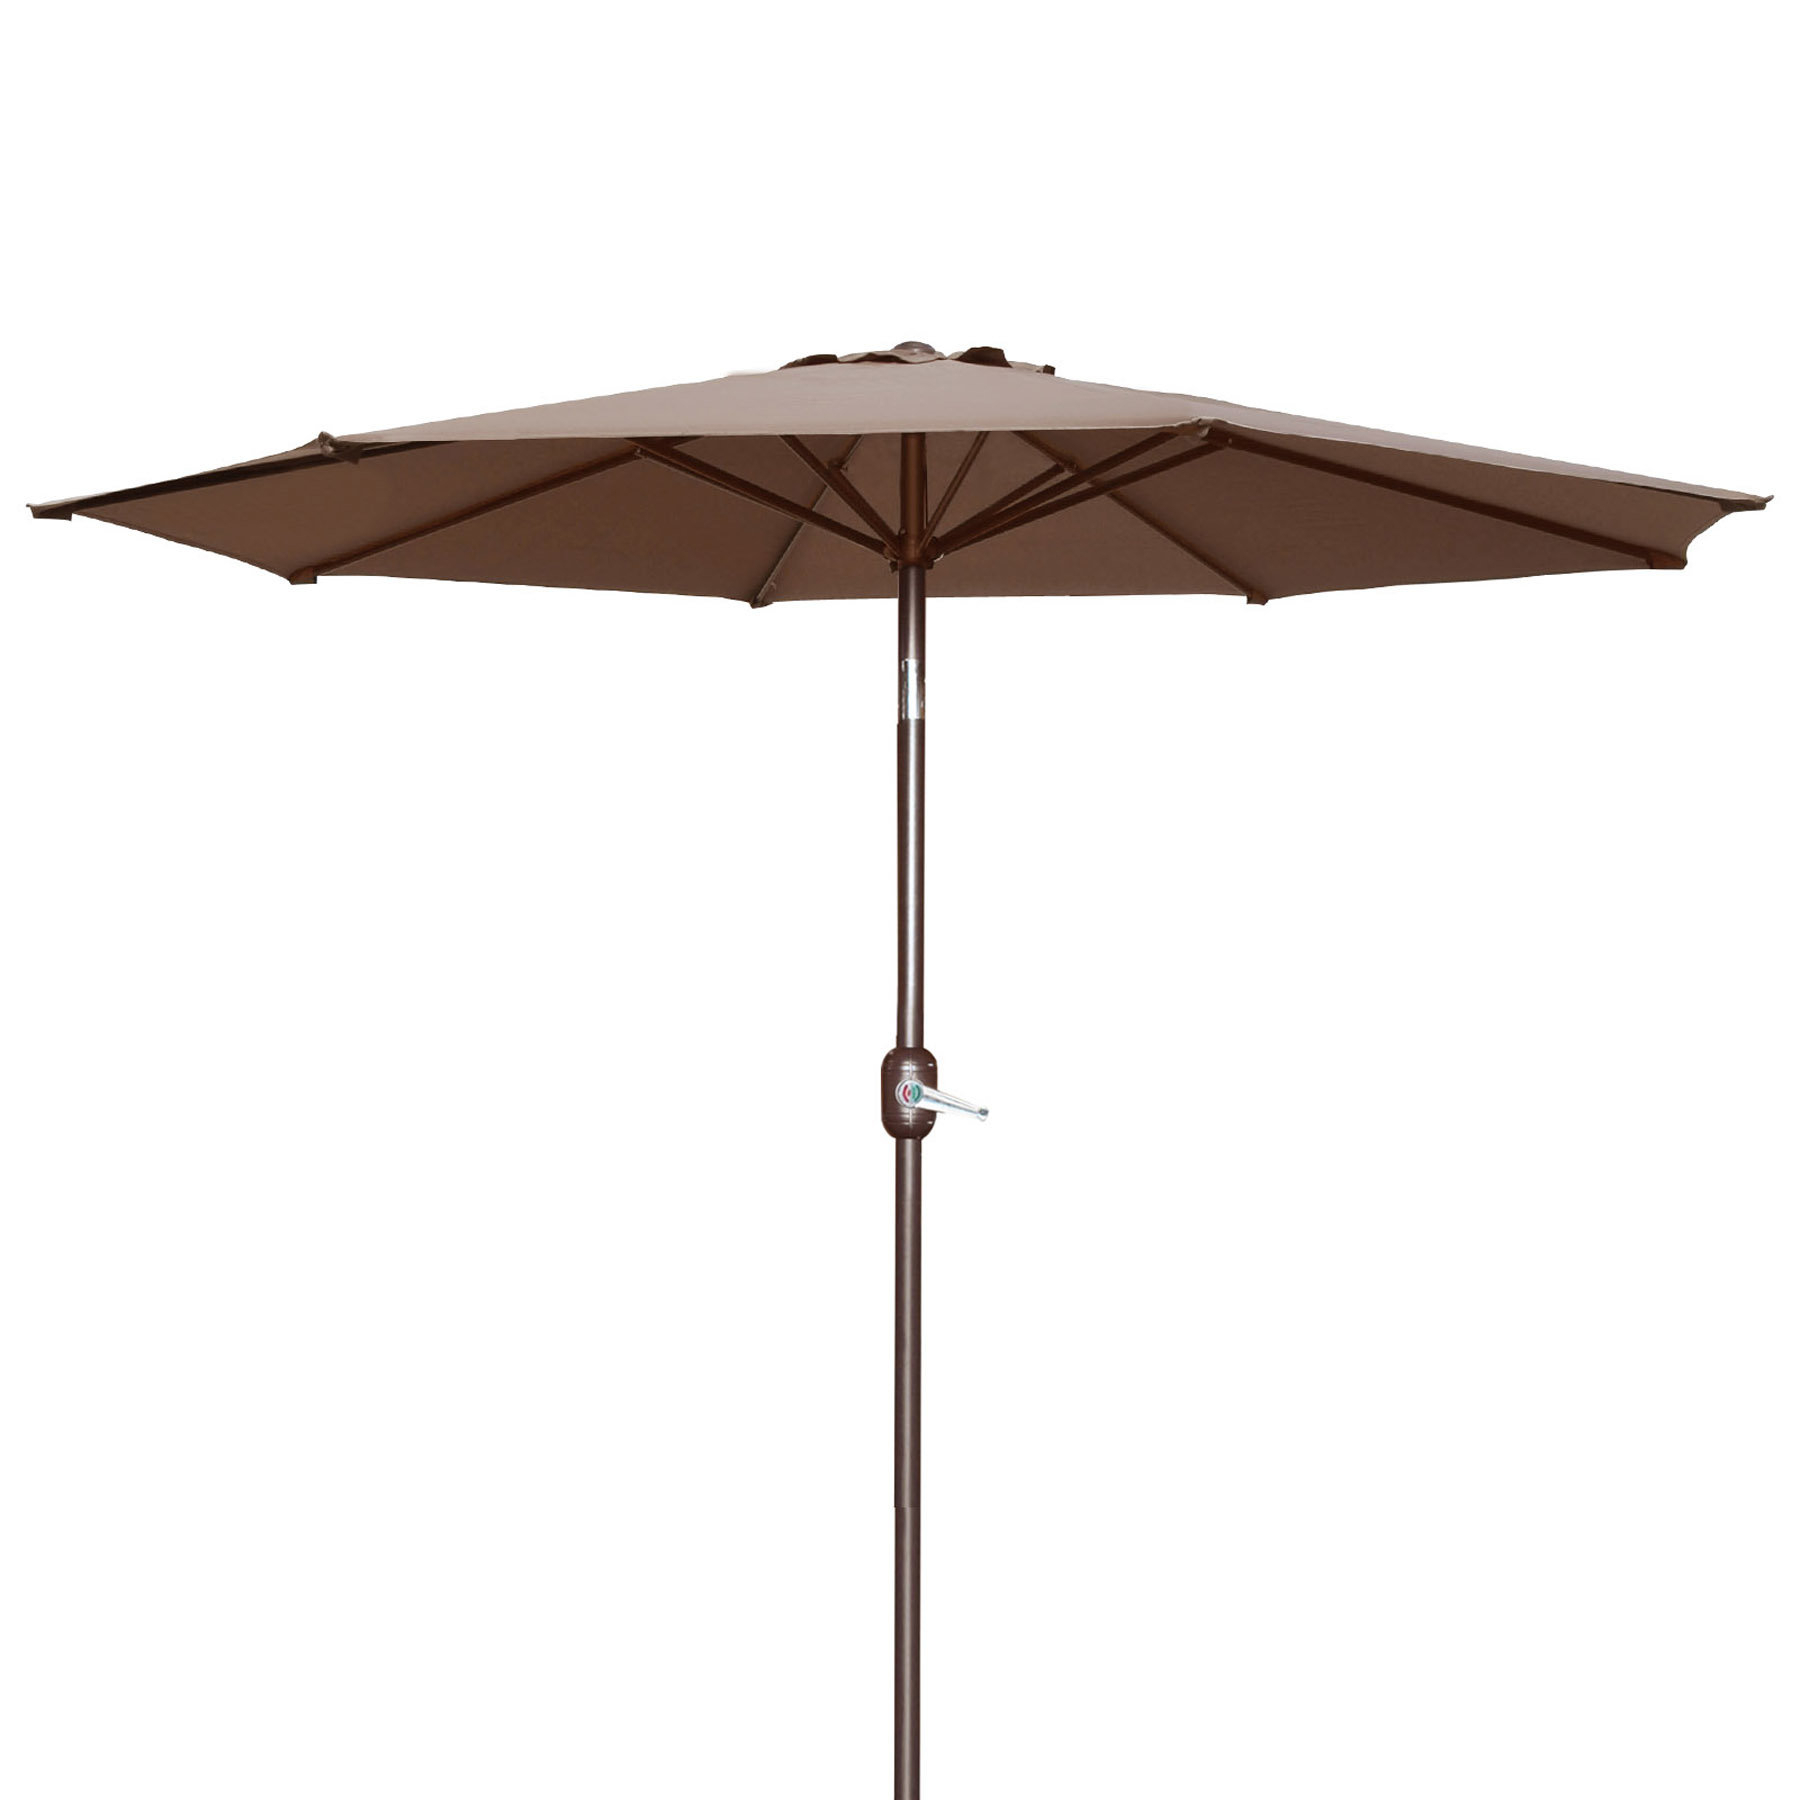 Best And Newest Wallach Market Sunbrella Umbrellas With Regard To Milligan Hexagonal Outdoor Garden Patio Market Umbrella (View 13 of 20)